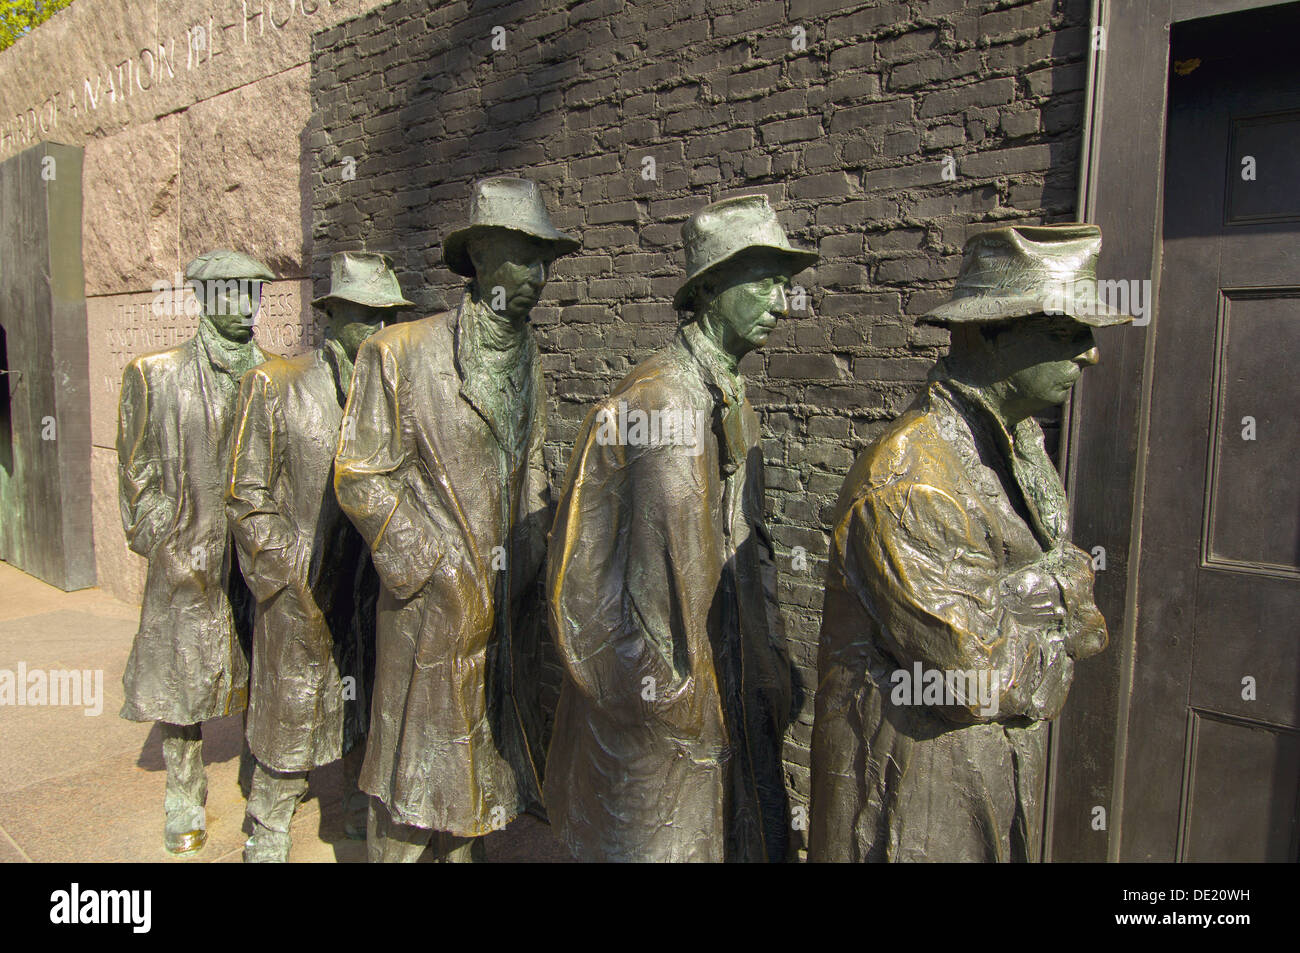 Sculptures of men in a bread line during the Great Depression, Franklin D. Roosevelt Memorial, Washington, District of - Stock Image